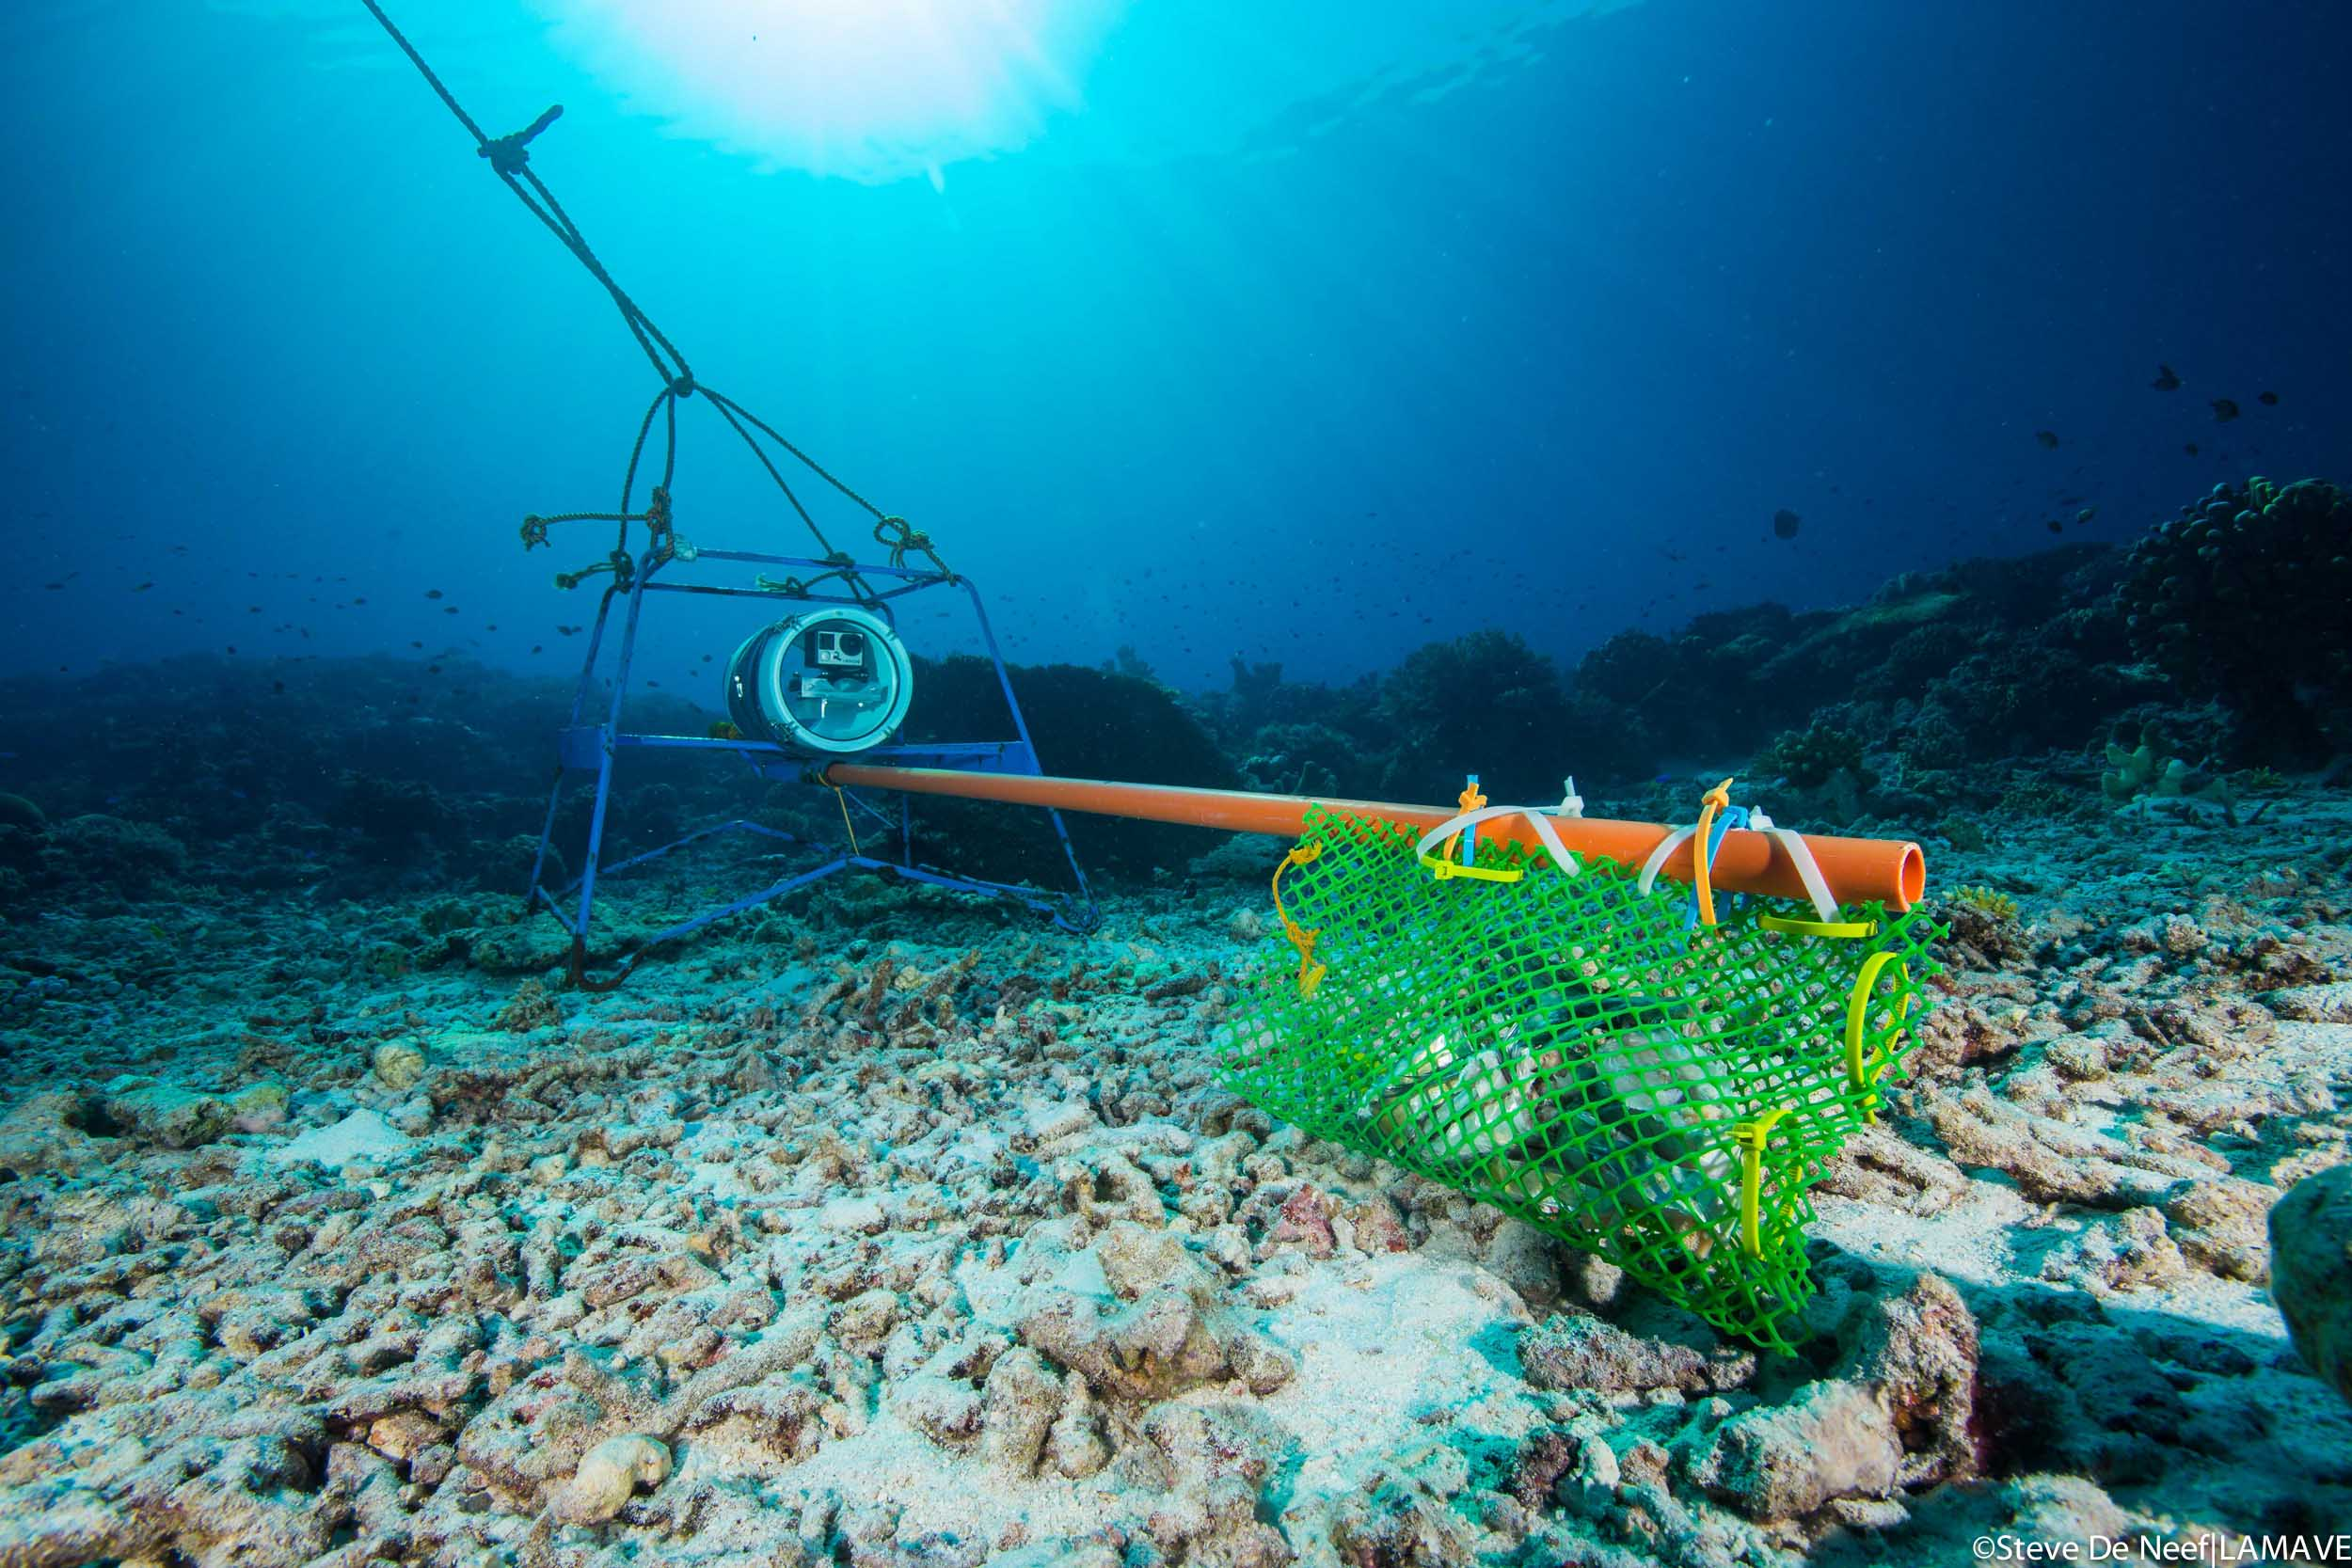 A BRUV System deployed in Tubbataha Reefs Natural Park.